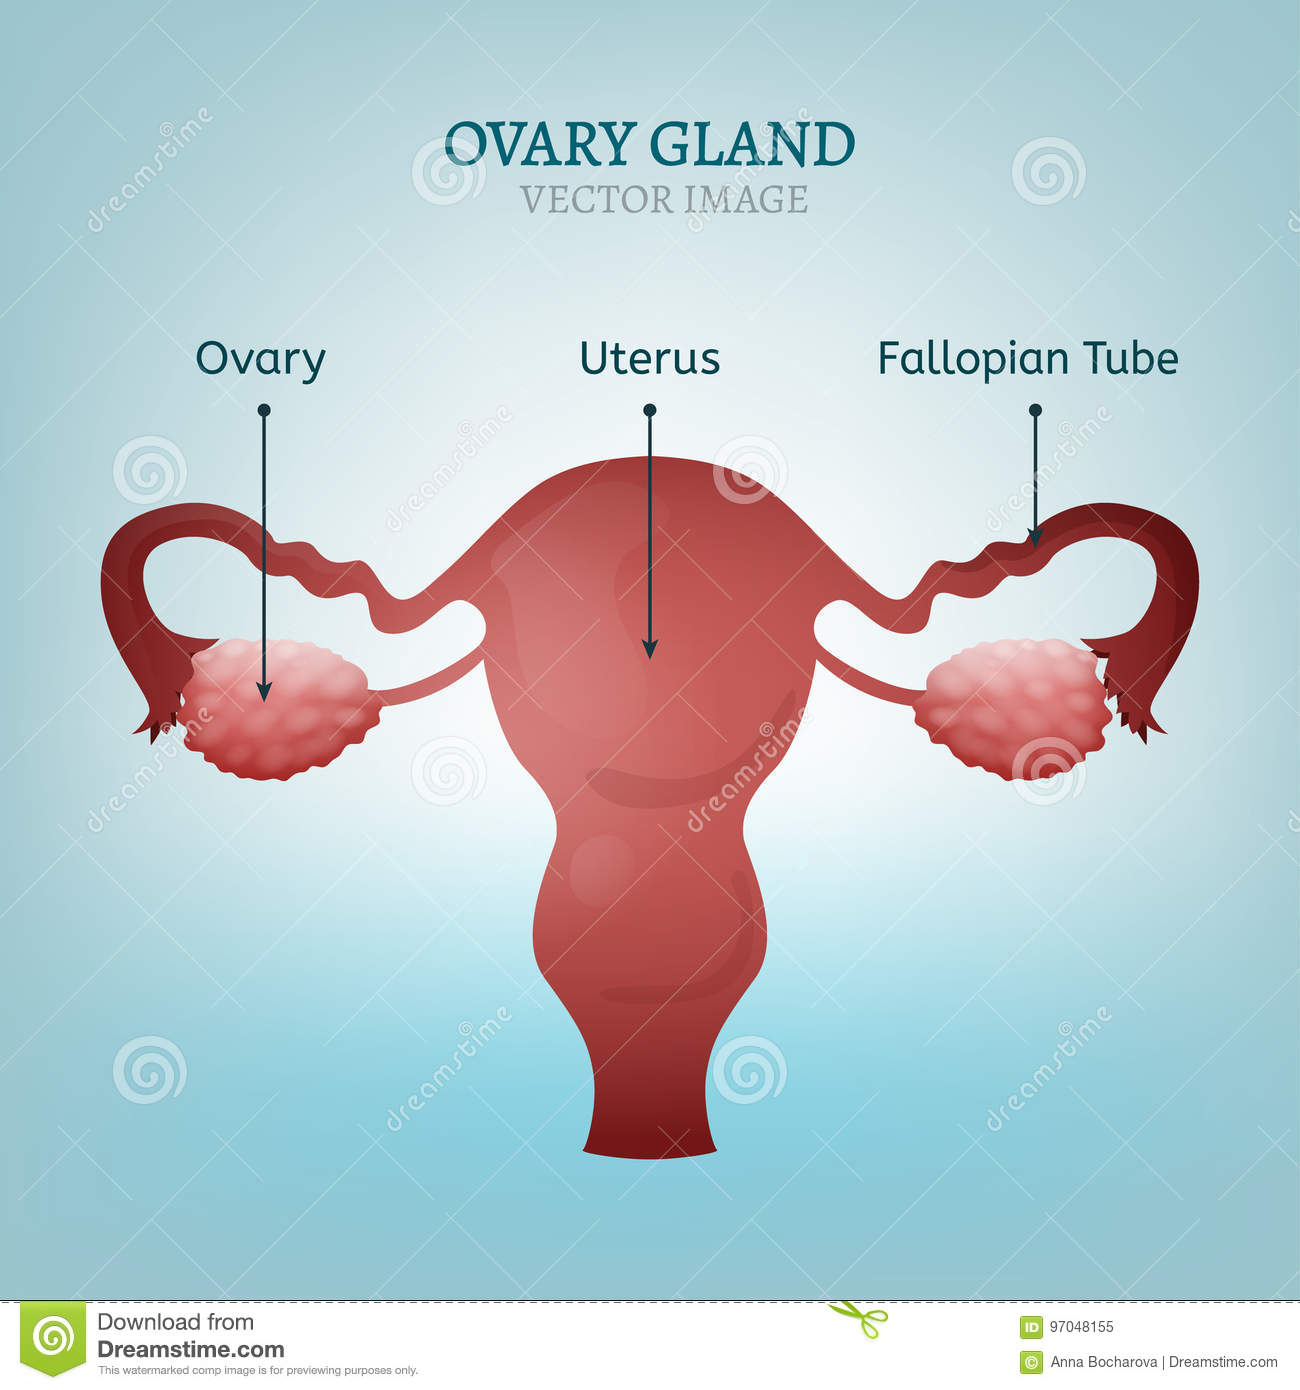 Ovary Gland Image Stock Vector Illustration Of Ovary 97048155